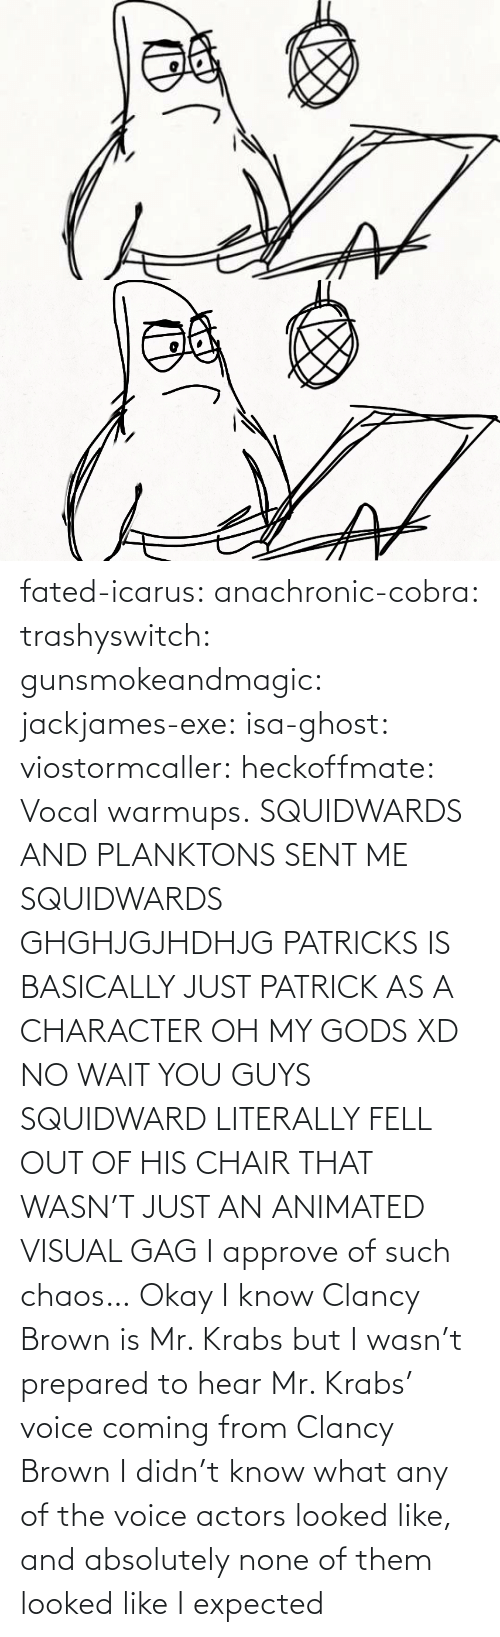 Ghost: fated-icarus:  anachronic-cobra: trashyswitch:  gunsmokeandmagic:  jackjames-exe:  isa-ghost:   viostormcaller:  heckoffmate: Vocal warmups. SQUIDWARDS AND PLANKTONS SENT ME  SQUIDWARDS GHGHJGJHDHJG   PATRICKS IS BASICALLY JUST PATRICK AS A CHARACTER OH MY GODS XD   NO WAIT YOU GUYS SQUIDWARD LITERALLY FELL OUT OF HIS CHAIR THAT WASN'T JUST AN ANIMATED VISUAL GAG    I approve of such chaos…    Okay I know Clancy Brown is Mr. Krabs but I wasn't prepared to hear Mr. Krabs' voice coming from Clancy Brown    I didn't know what any of the voice actors looked like, and absolutely none of them looked like I expected